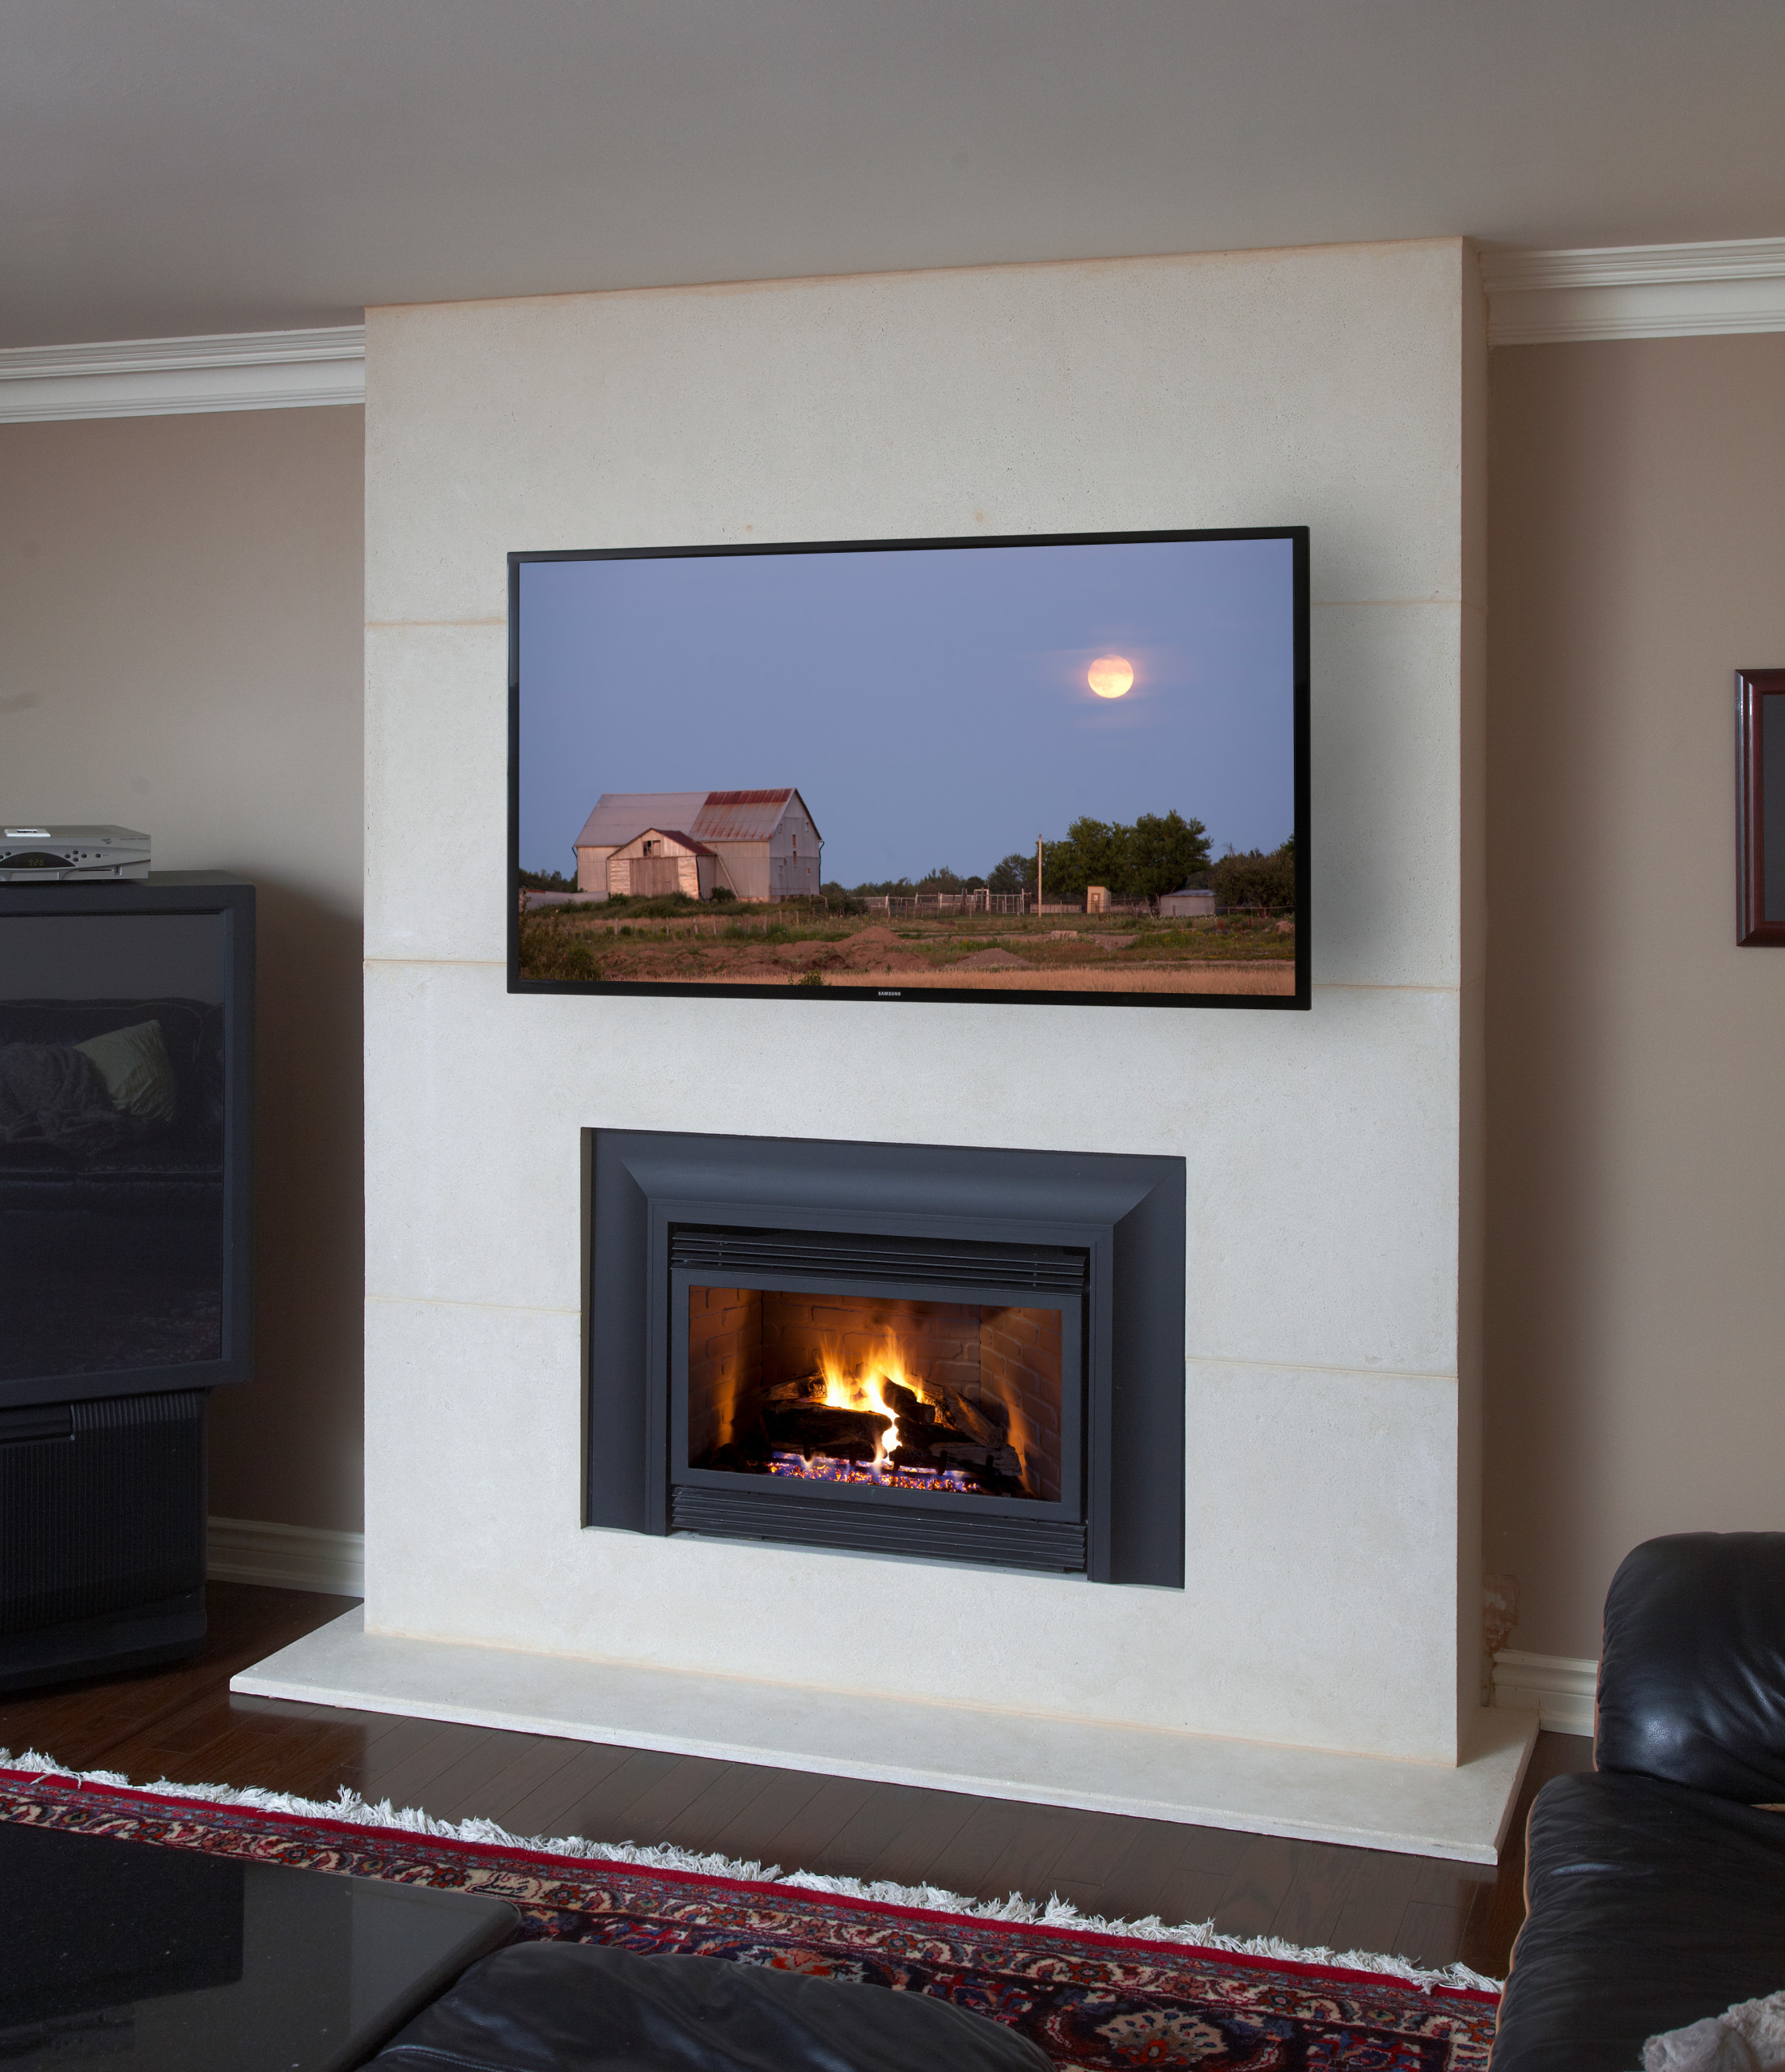 75 Beautiful Small Living Room With A Standard Fireplace Pictures Ideas November 2020 Houzz